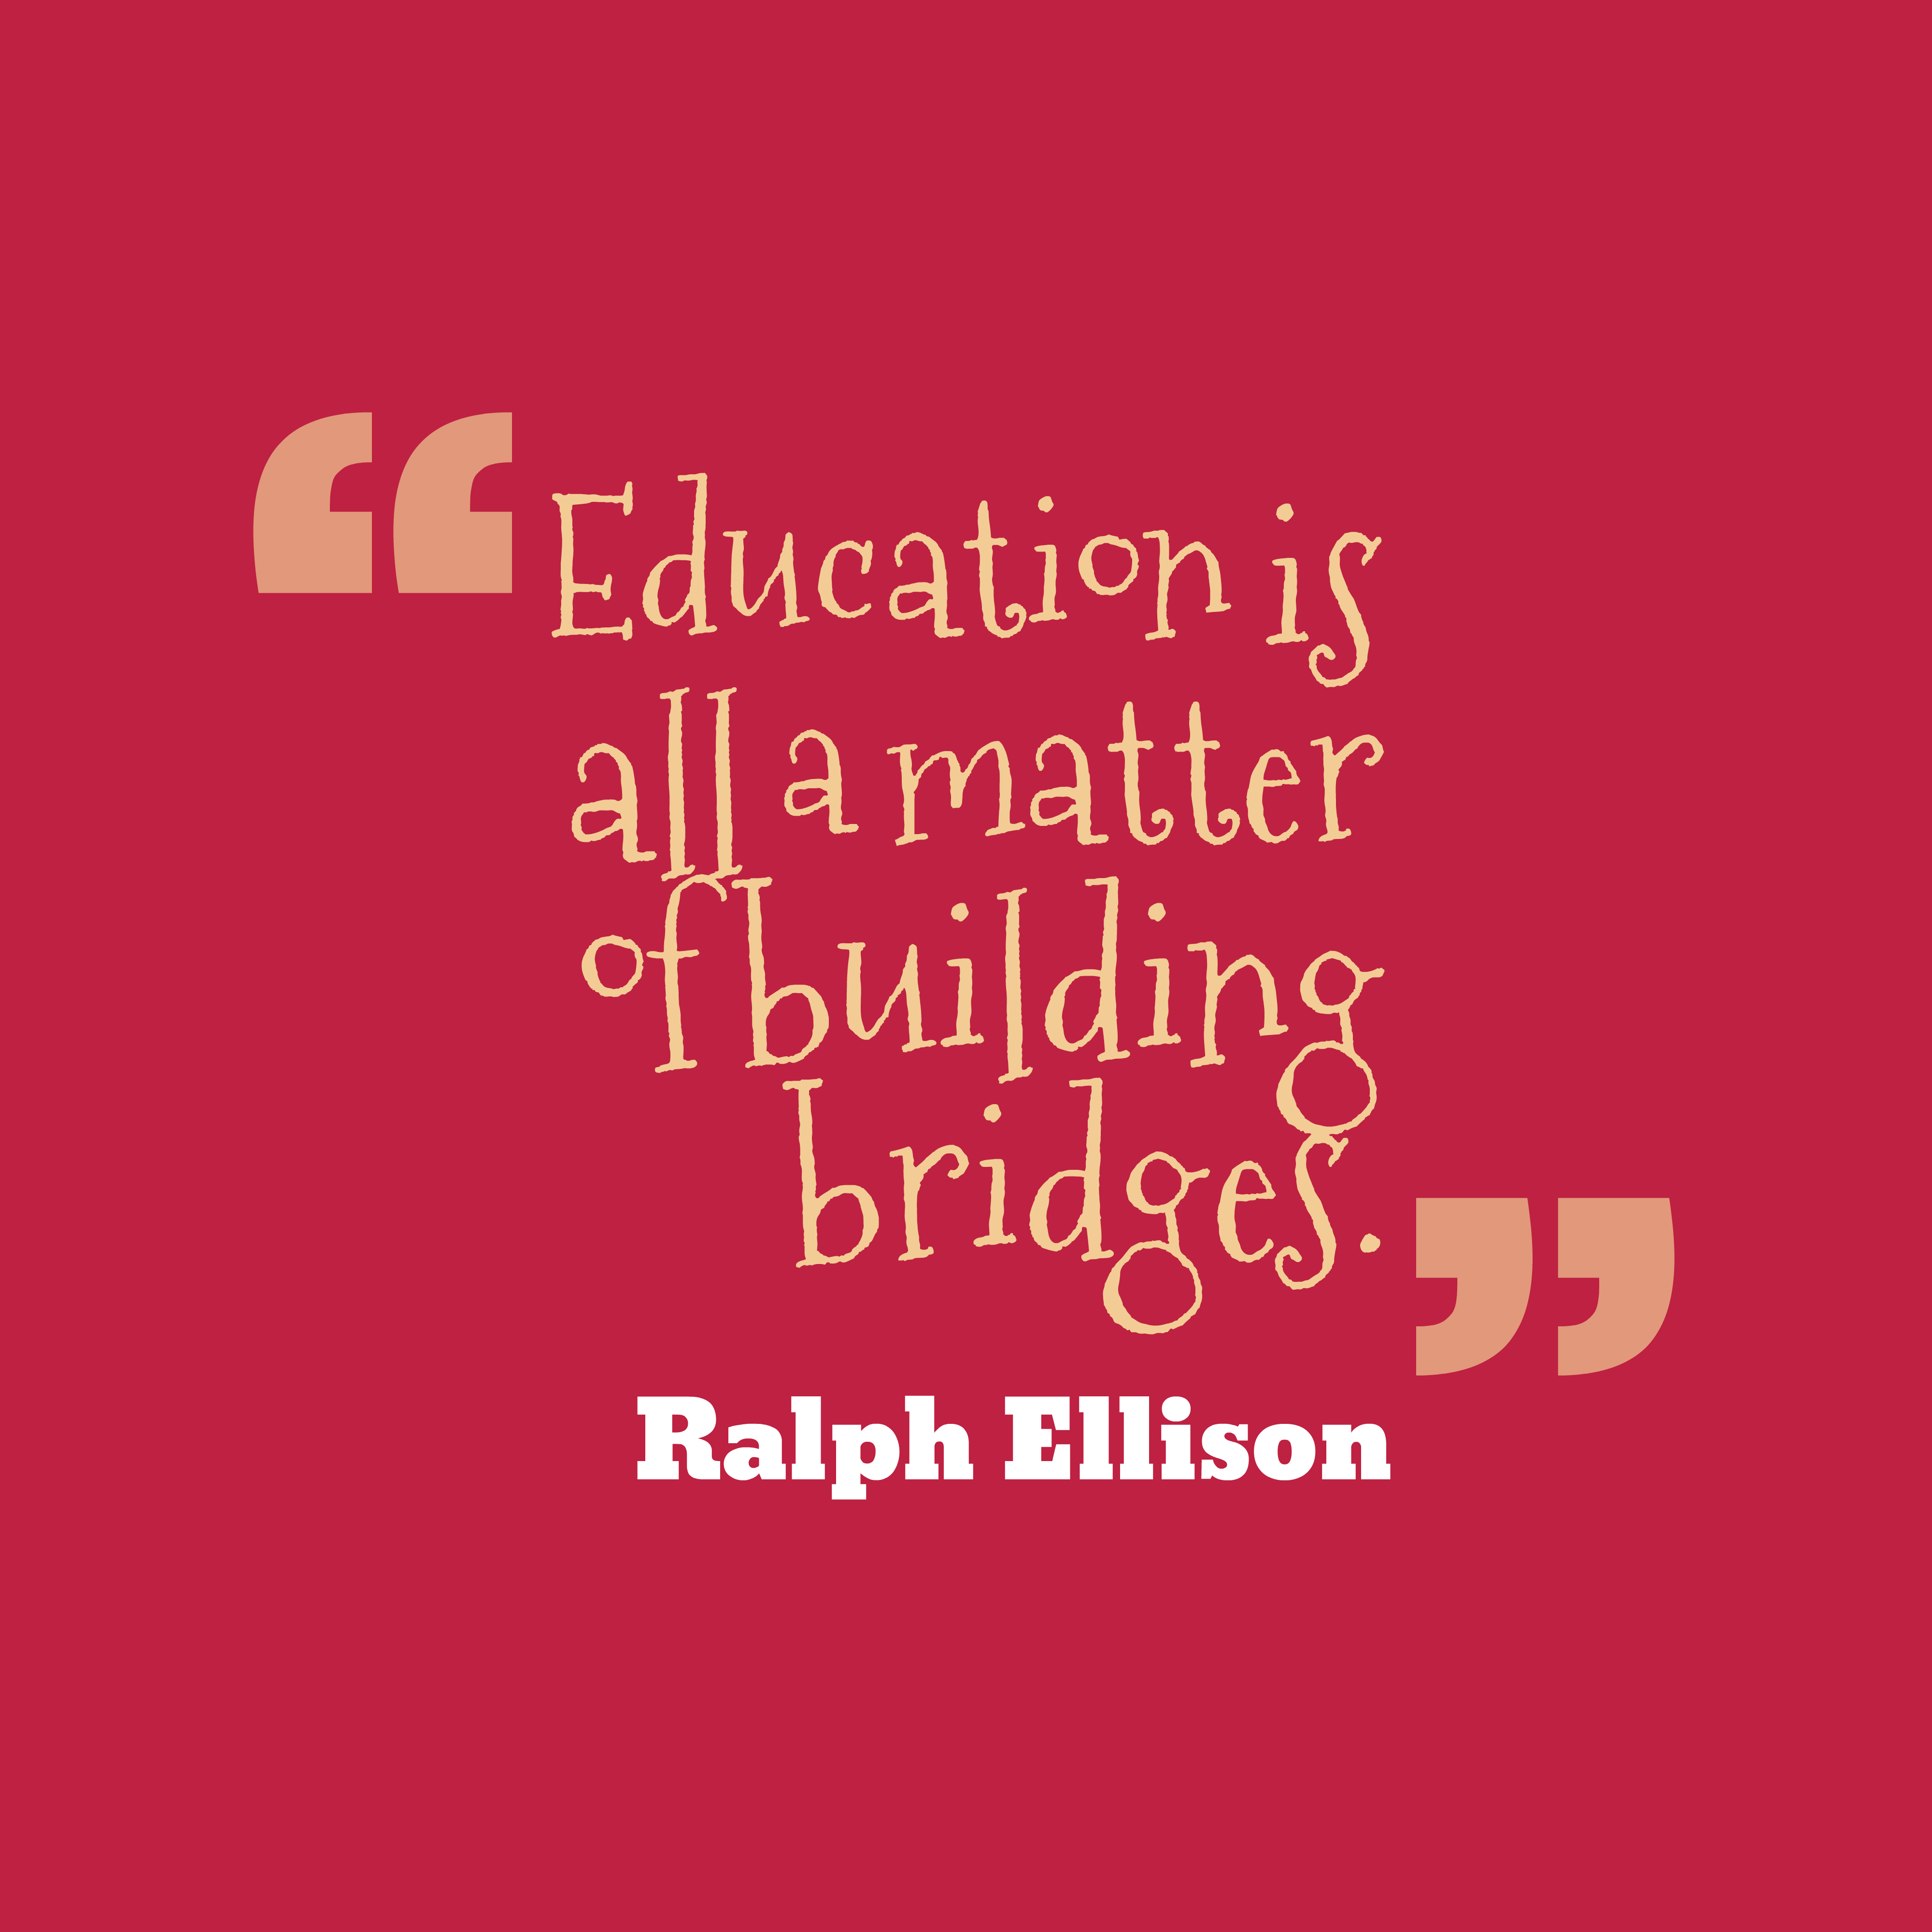 Quotes image of Education is all a matter of building bridges.